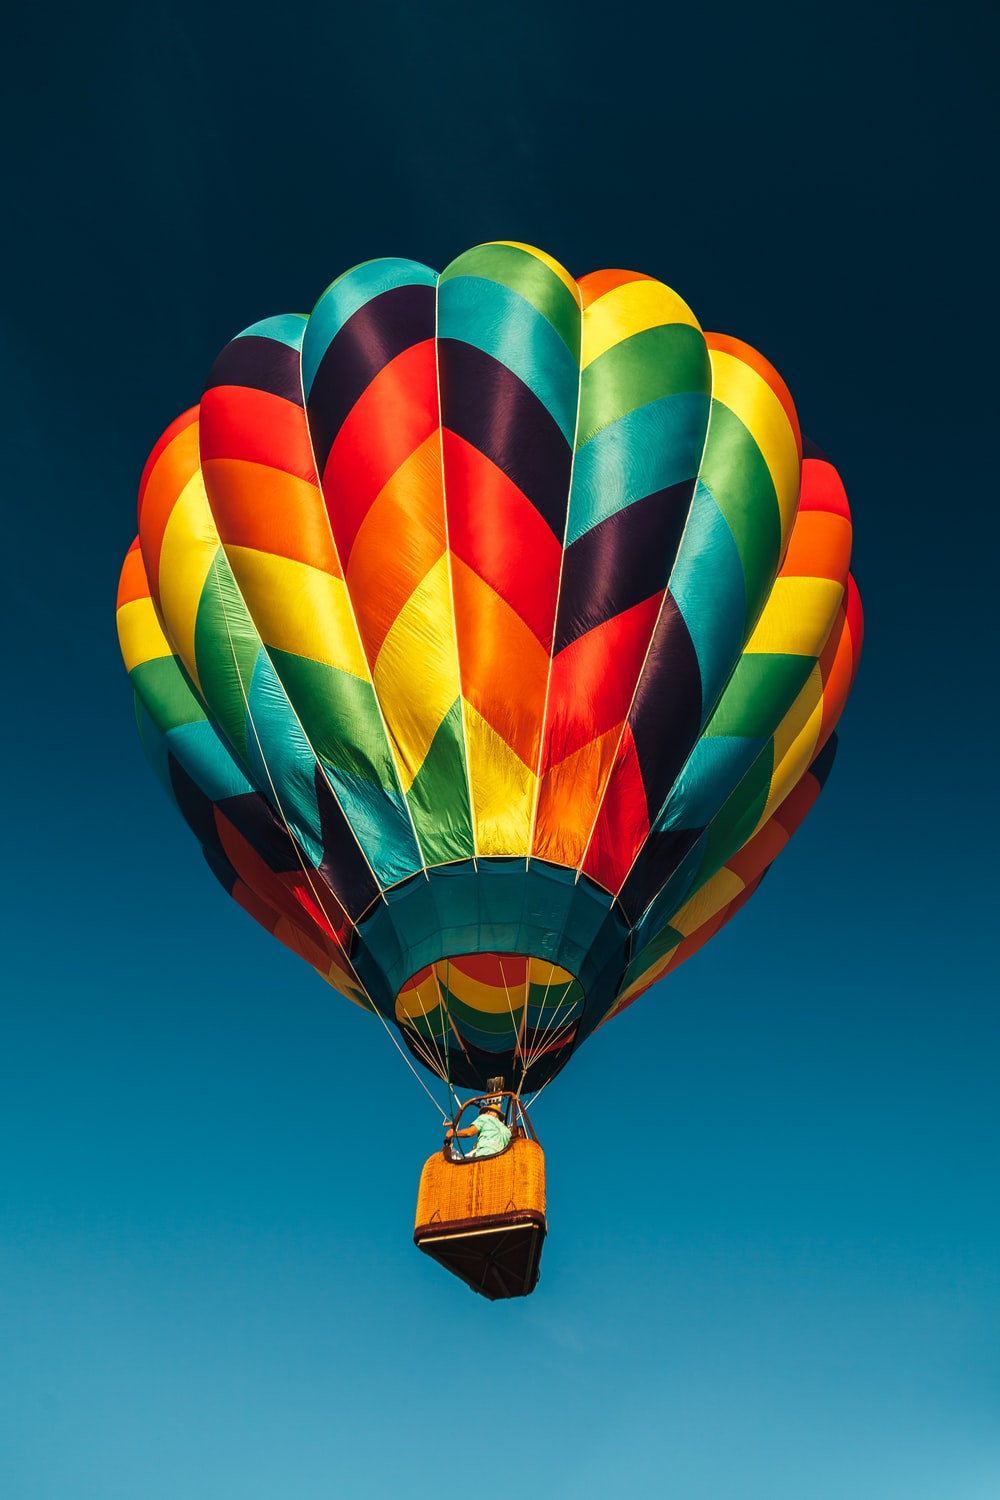 red and multicolored hot air balloon